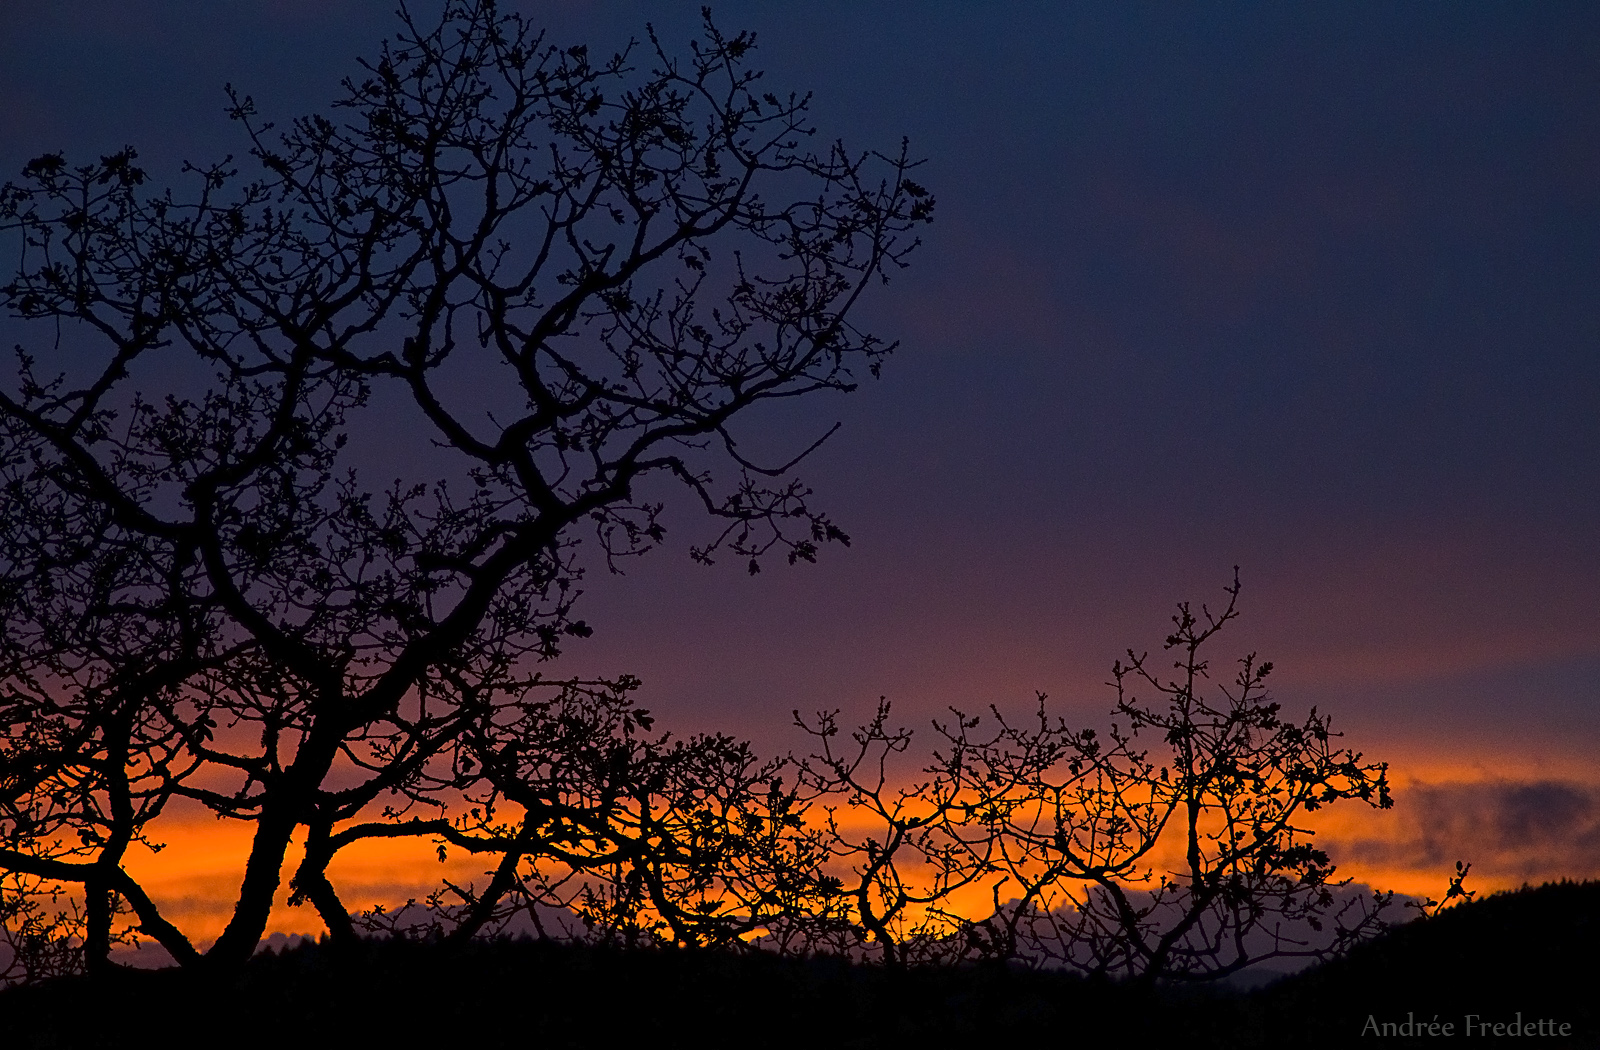 Silhouette sunset. Photo by Andrée Fredette